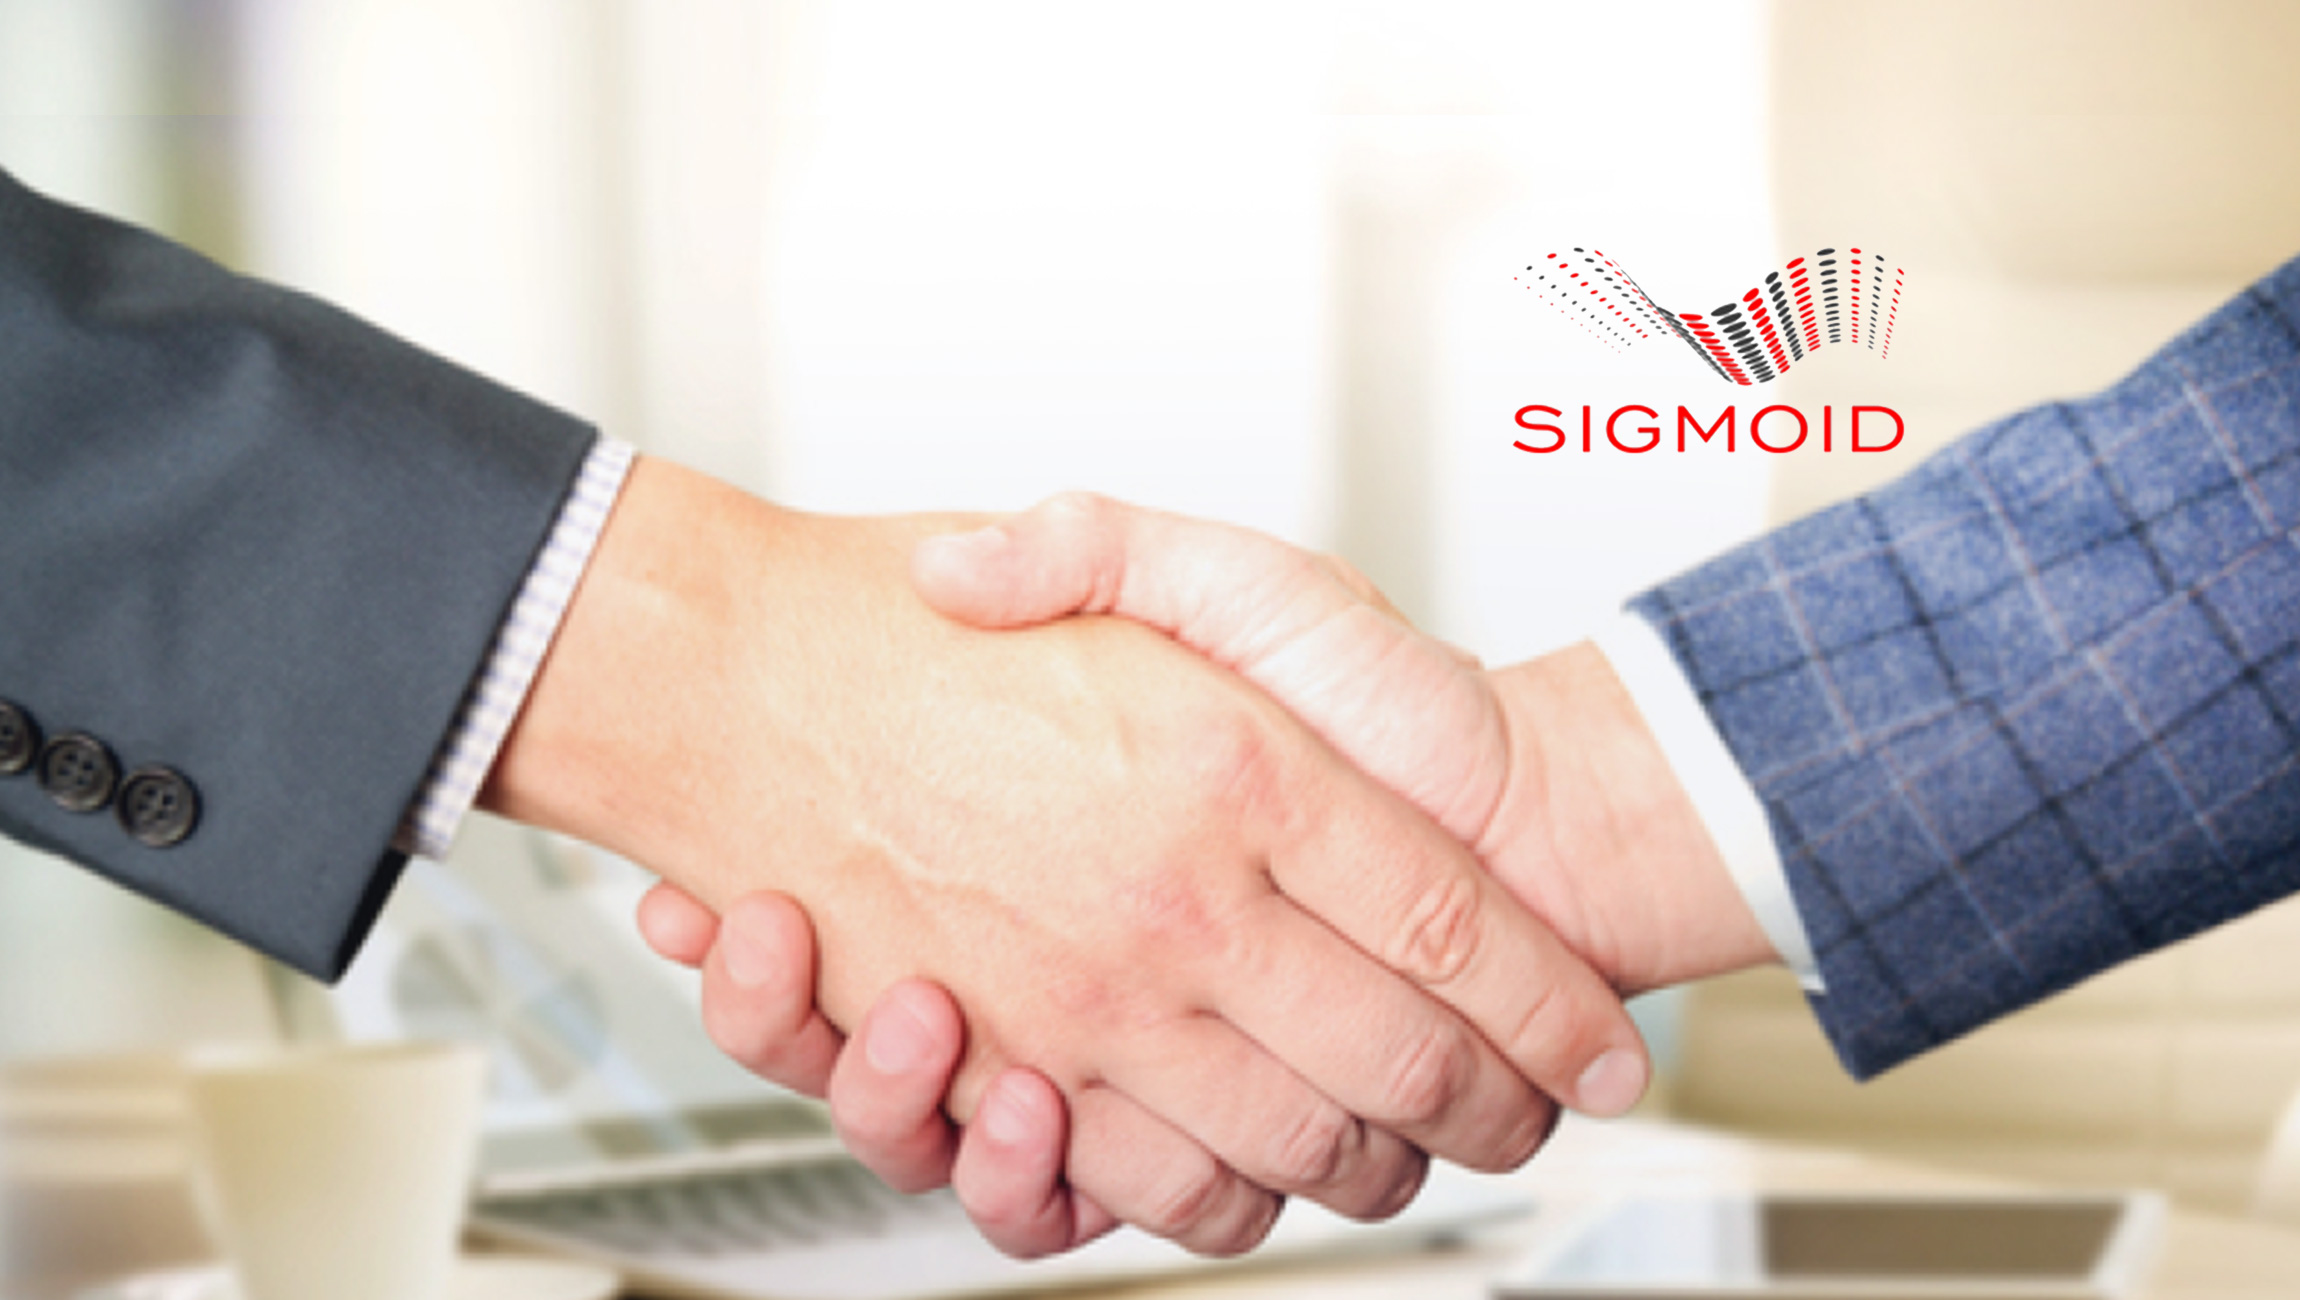 Sigmoid Delivers Next-Generation Analytical Solution 'SigView' to OpenX